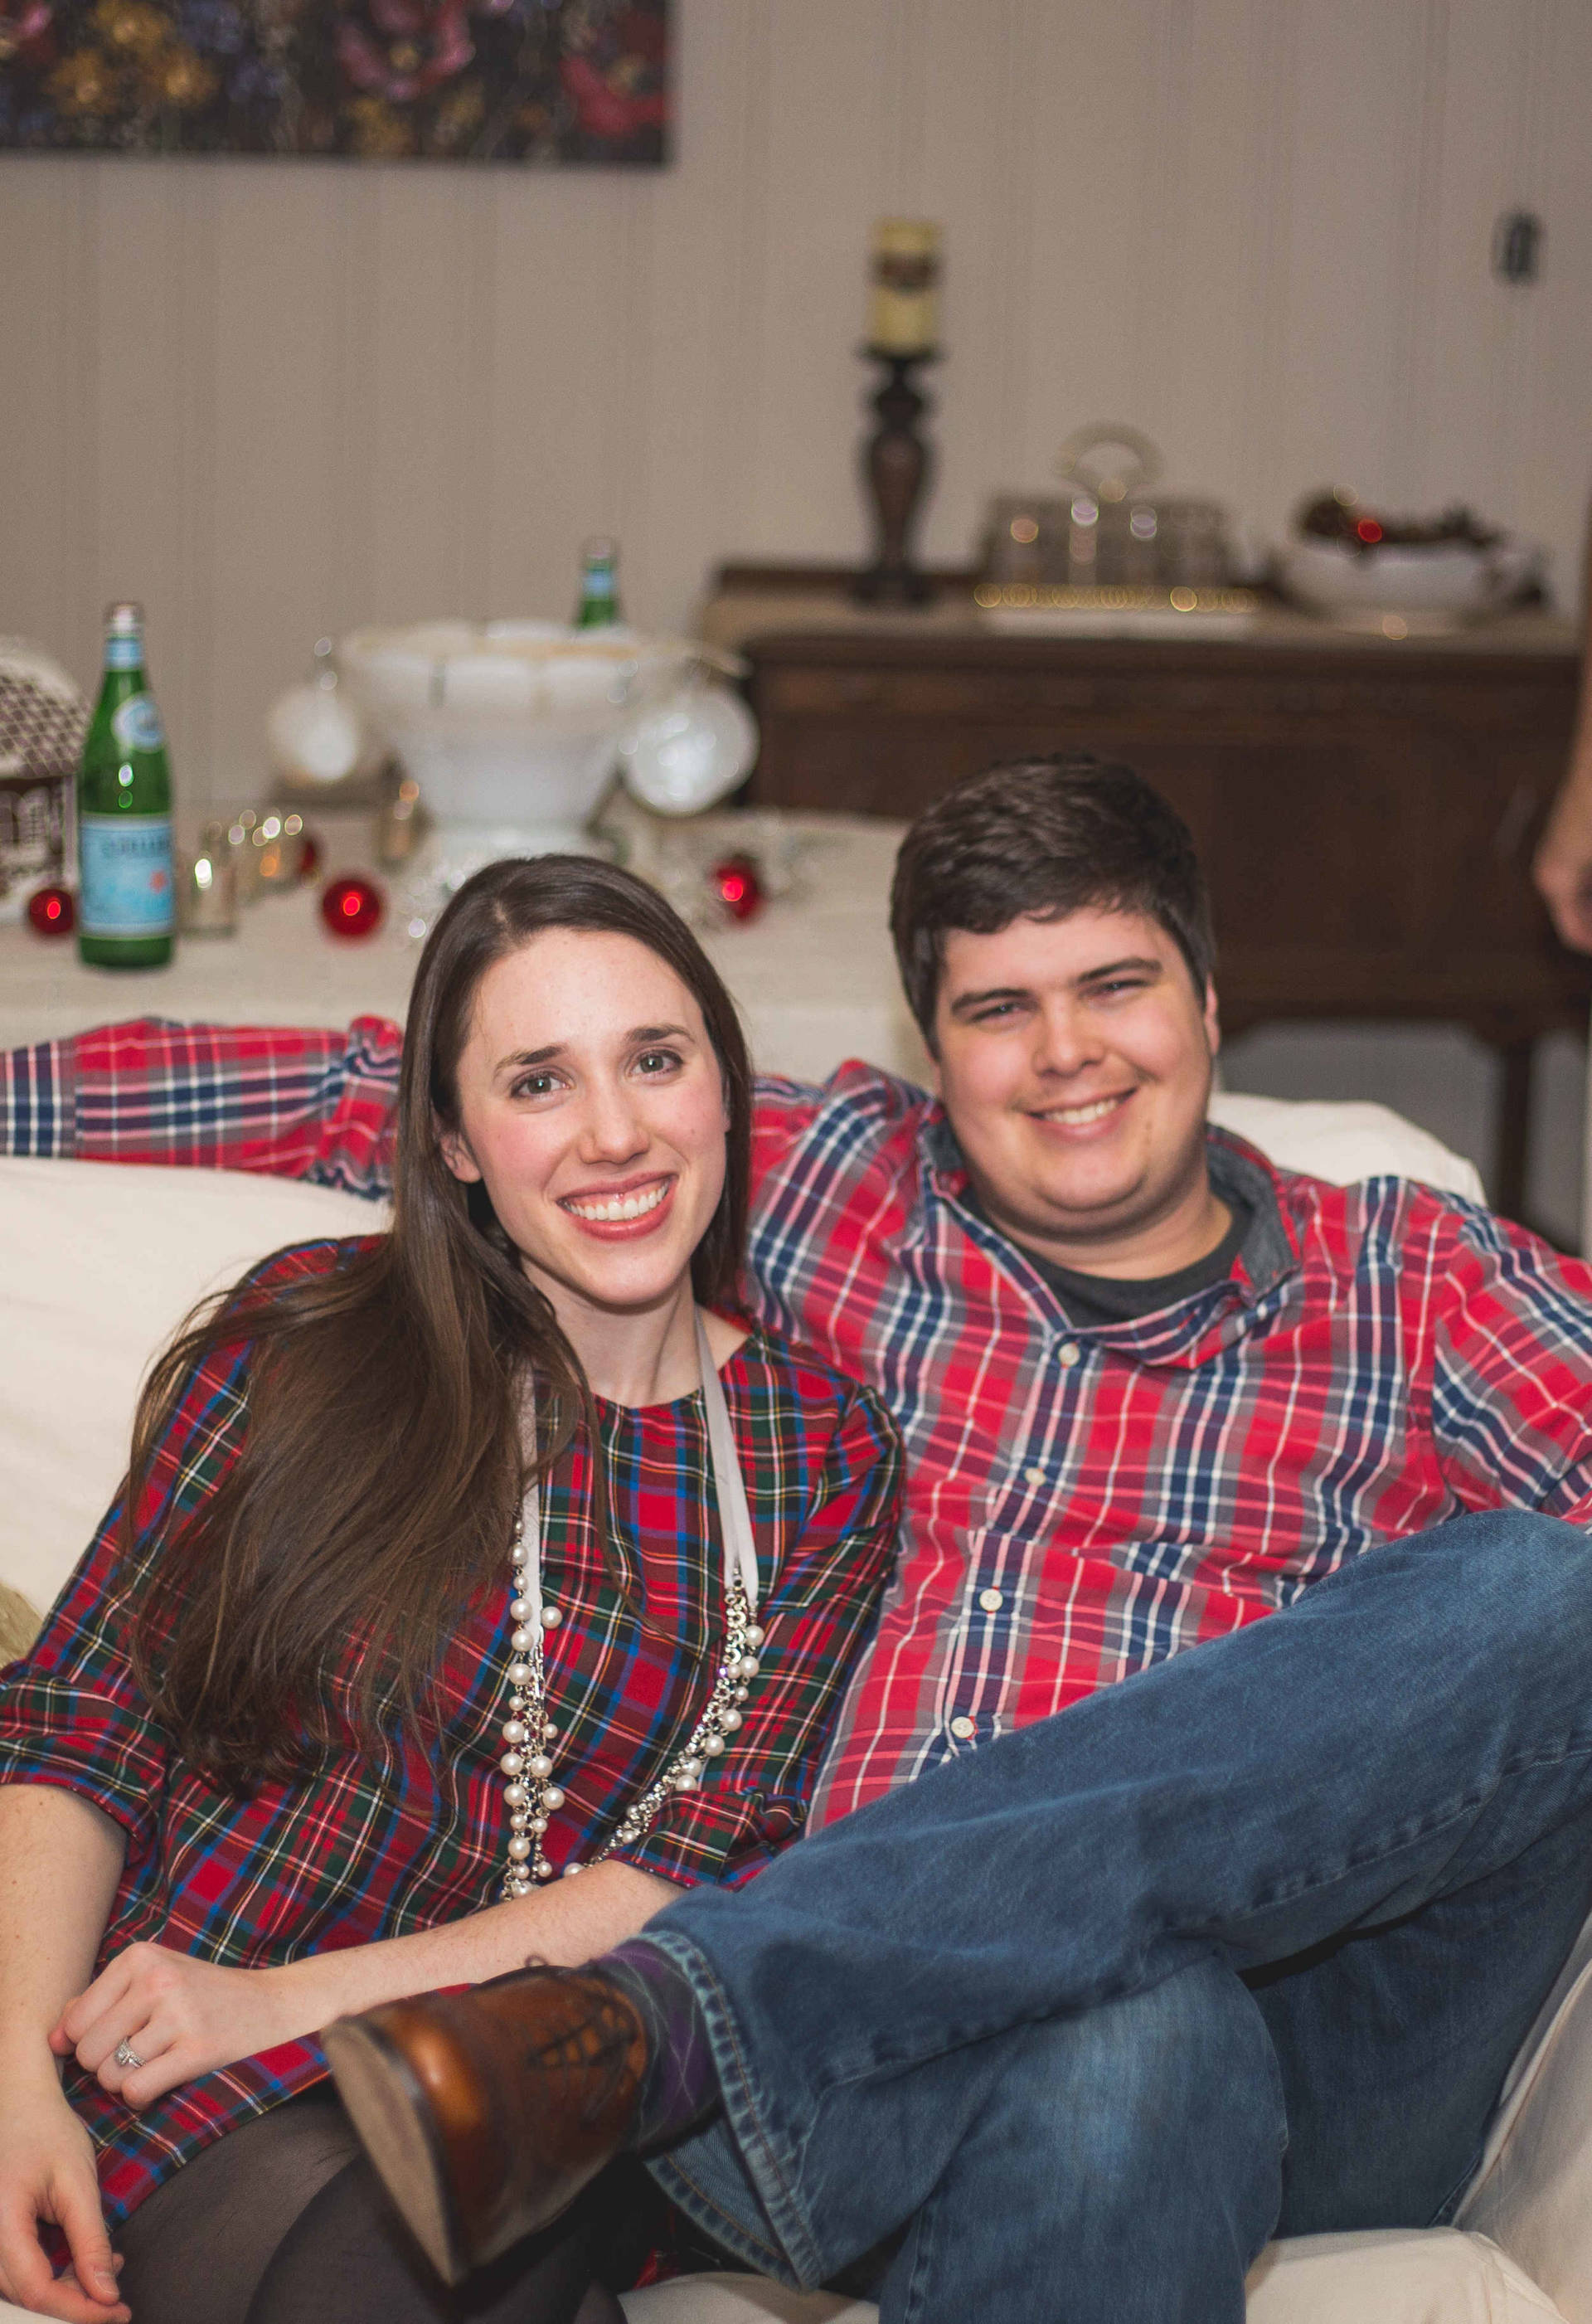 The Laurel Dress in Plaid - Plaid on plaid with my husband! Christmas Eve 2015